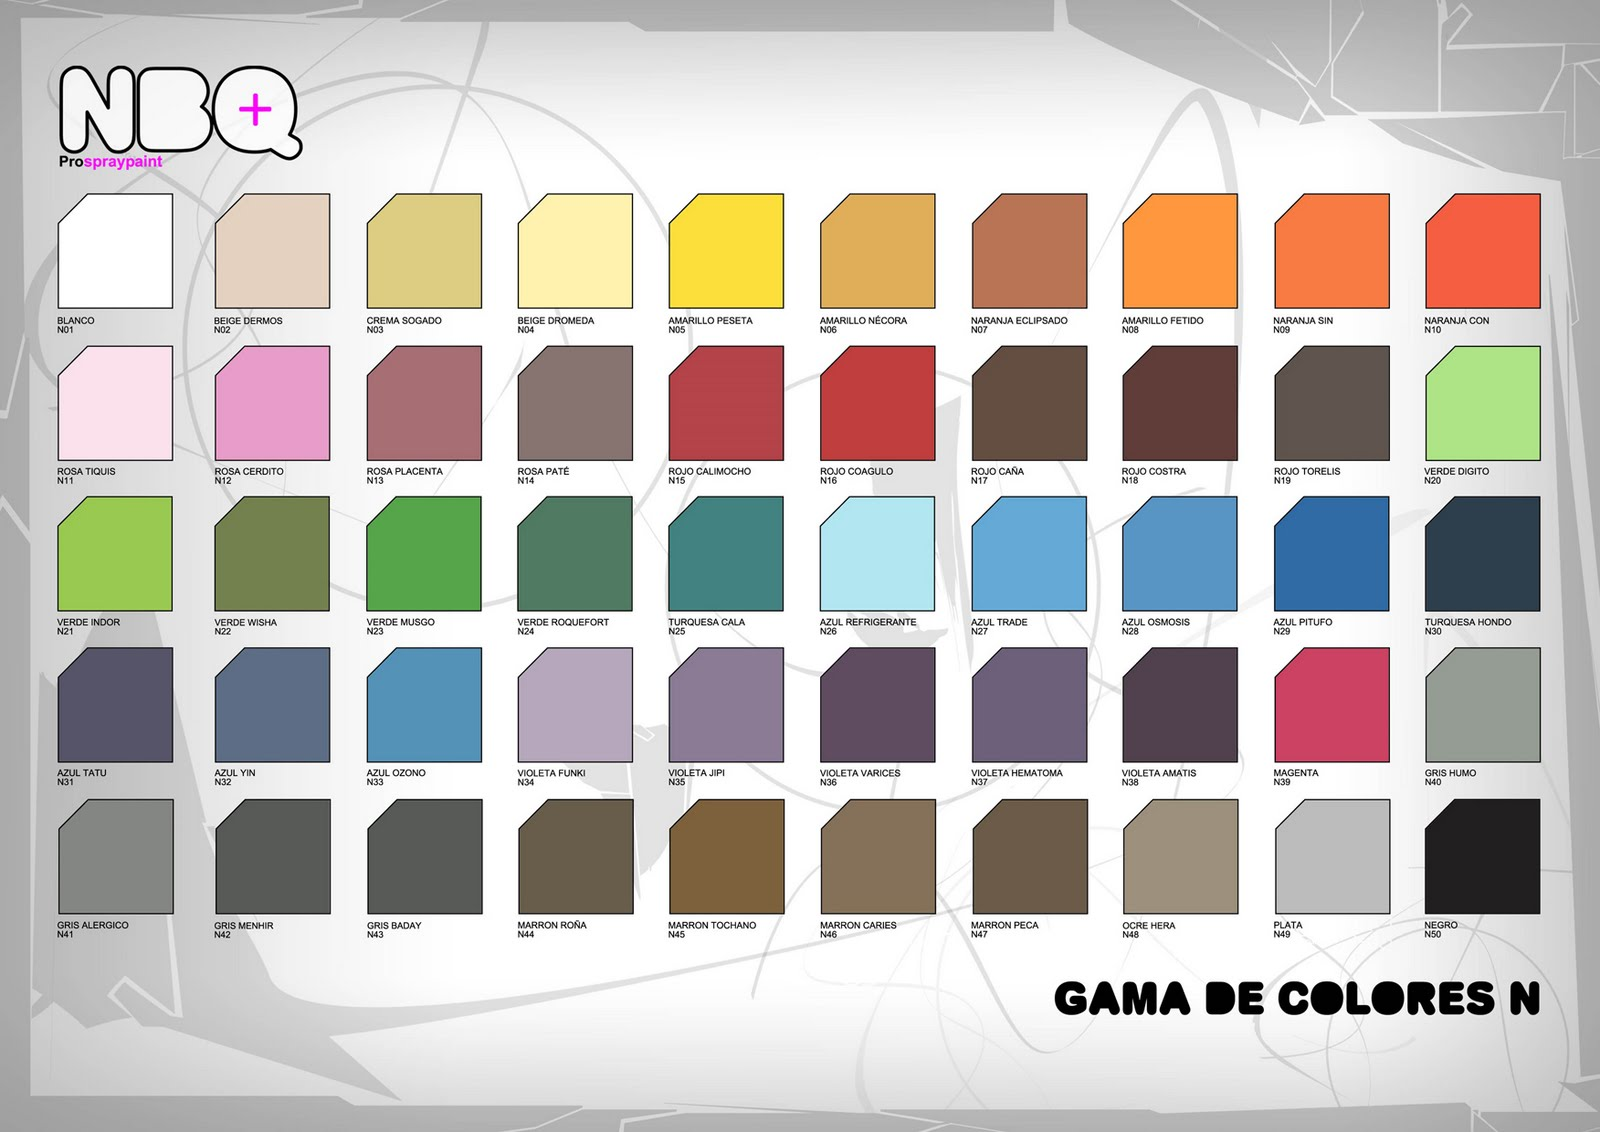 Pin pinturas montana carta de colores hawaii dermatology for Gama colores pintura